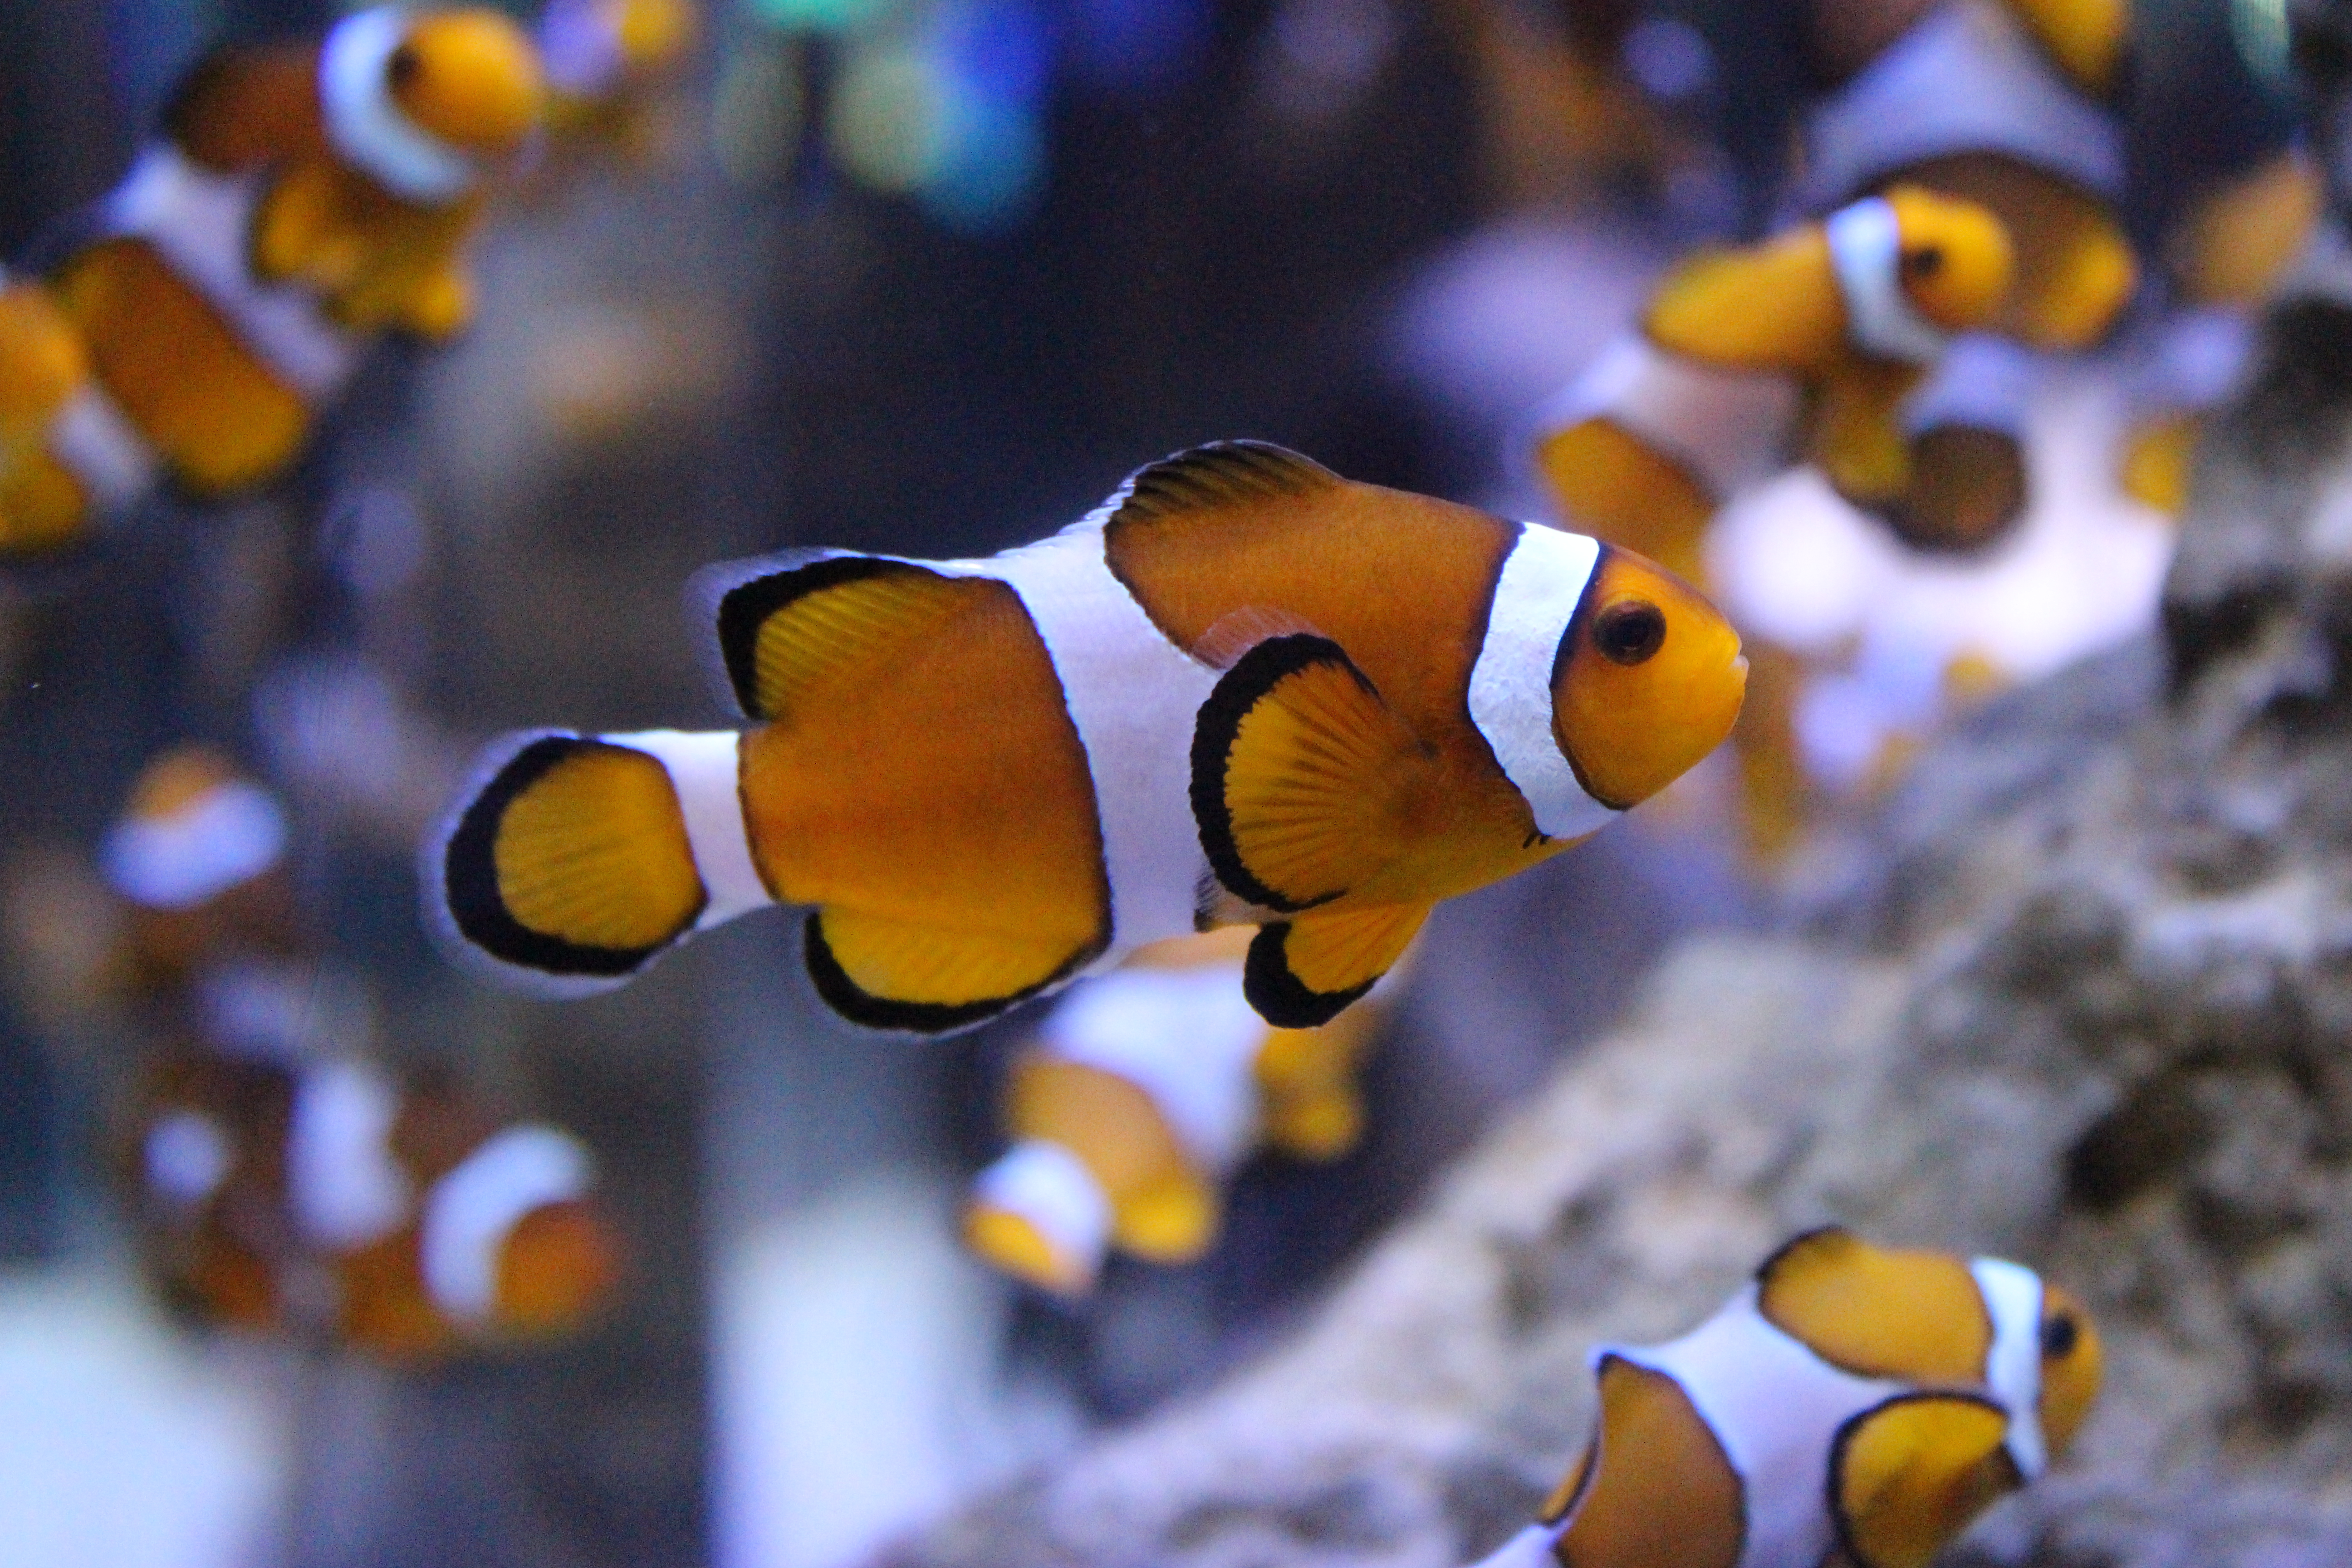 Western clownfish anemonefish species two oceans for Pictures of clown fish